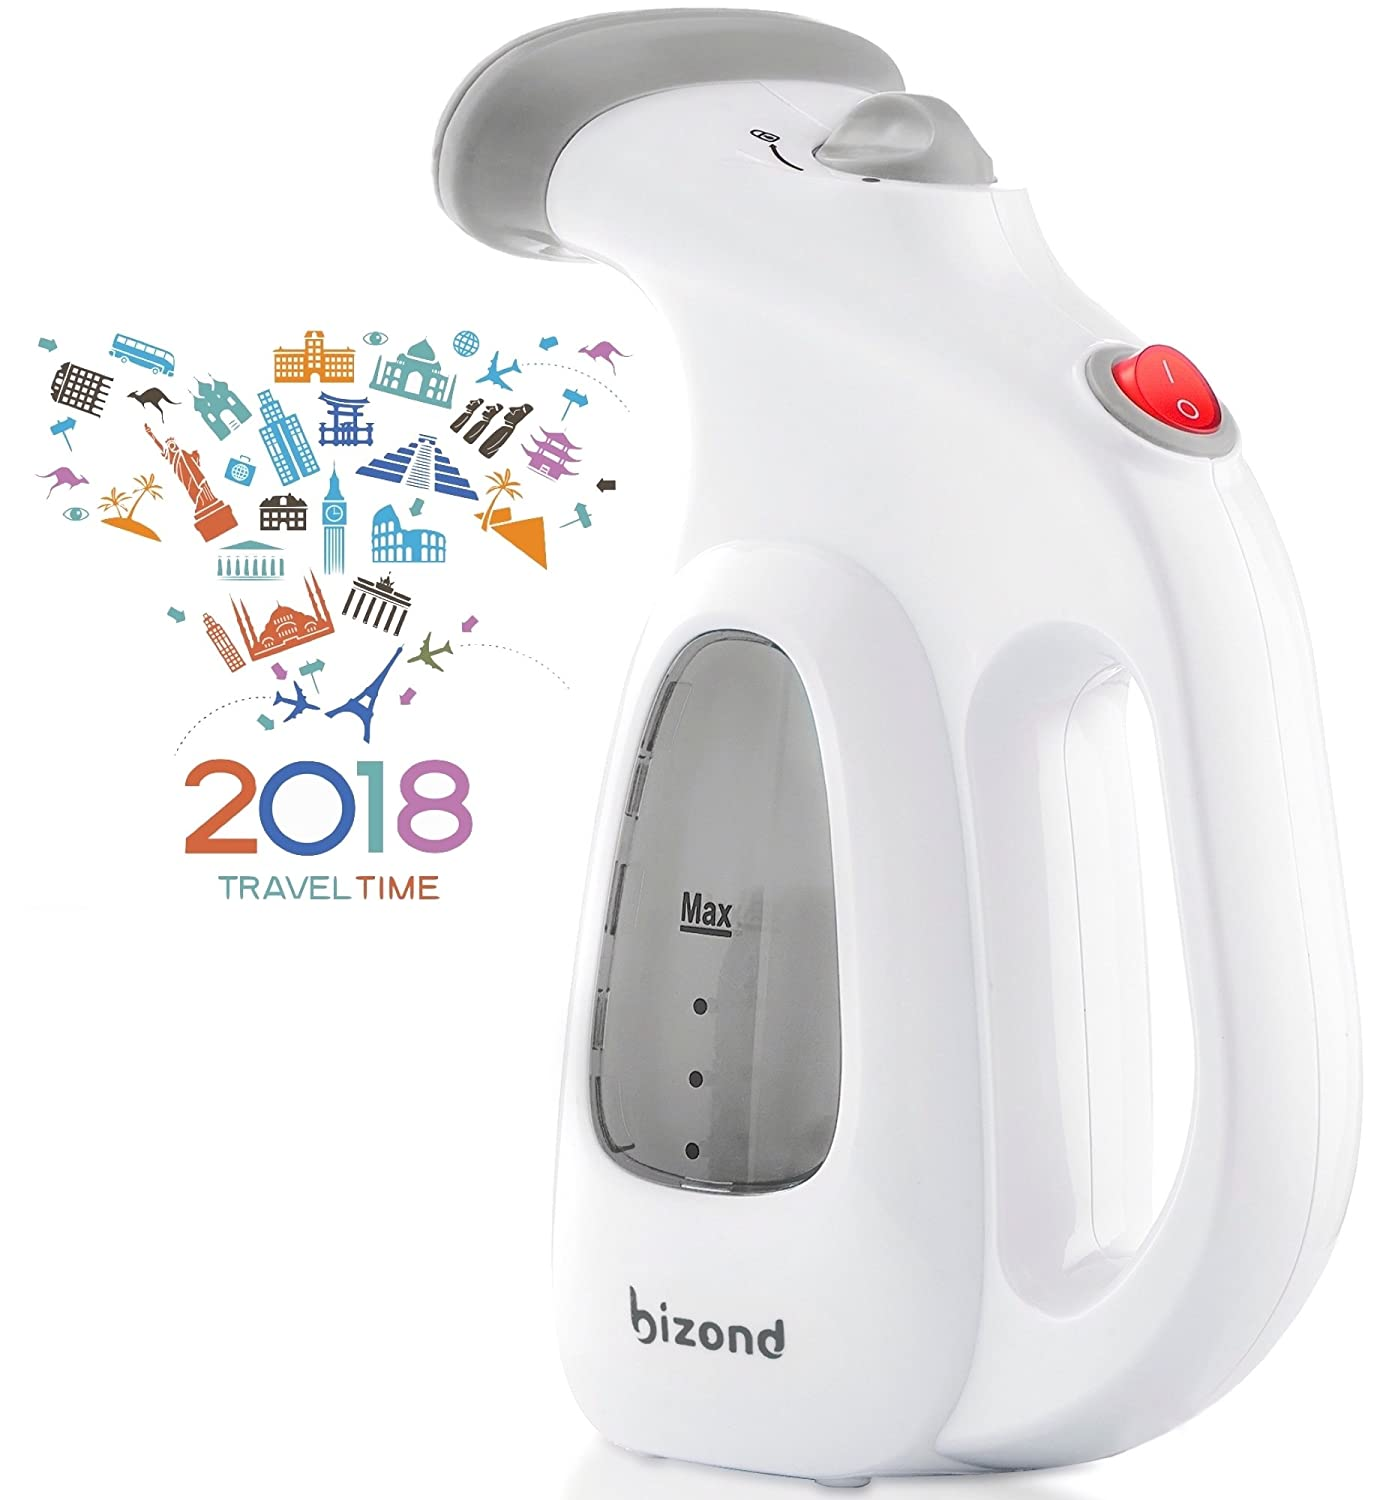 Bizond Portable Garment Steamer For Clothes, Handheld   Home And Travel Accessories   Compact Mini Steamer Clothing, Fabric, Draperies, Shirt   Safe And Little Handy, Anti Spill Steamer Iron   (Gray) by Bizond